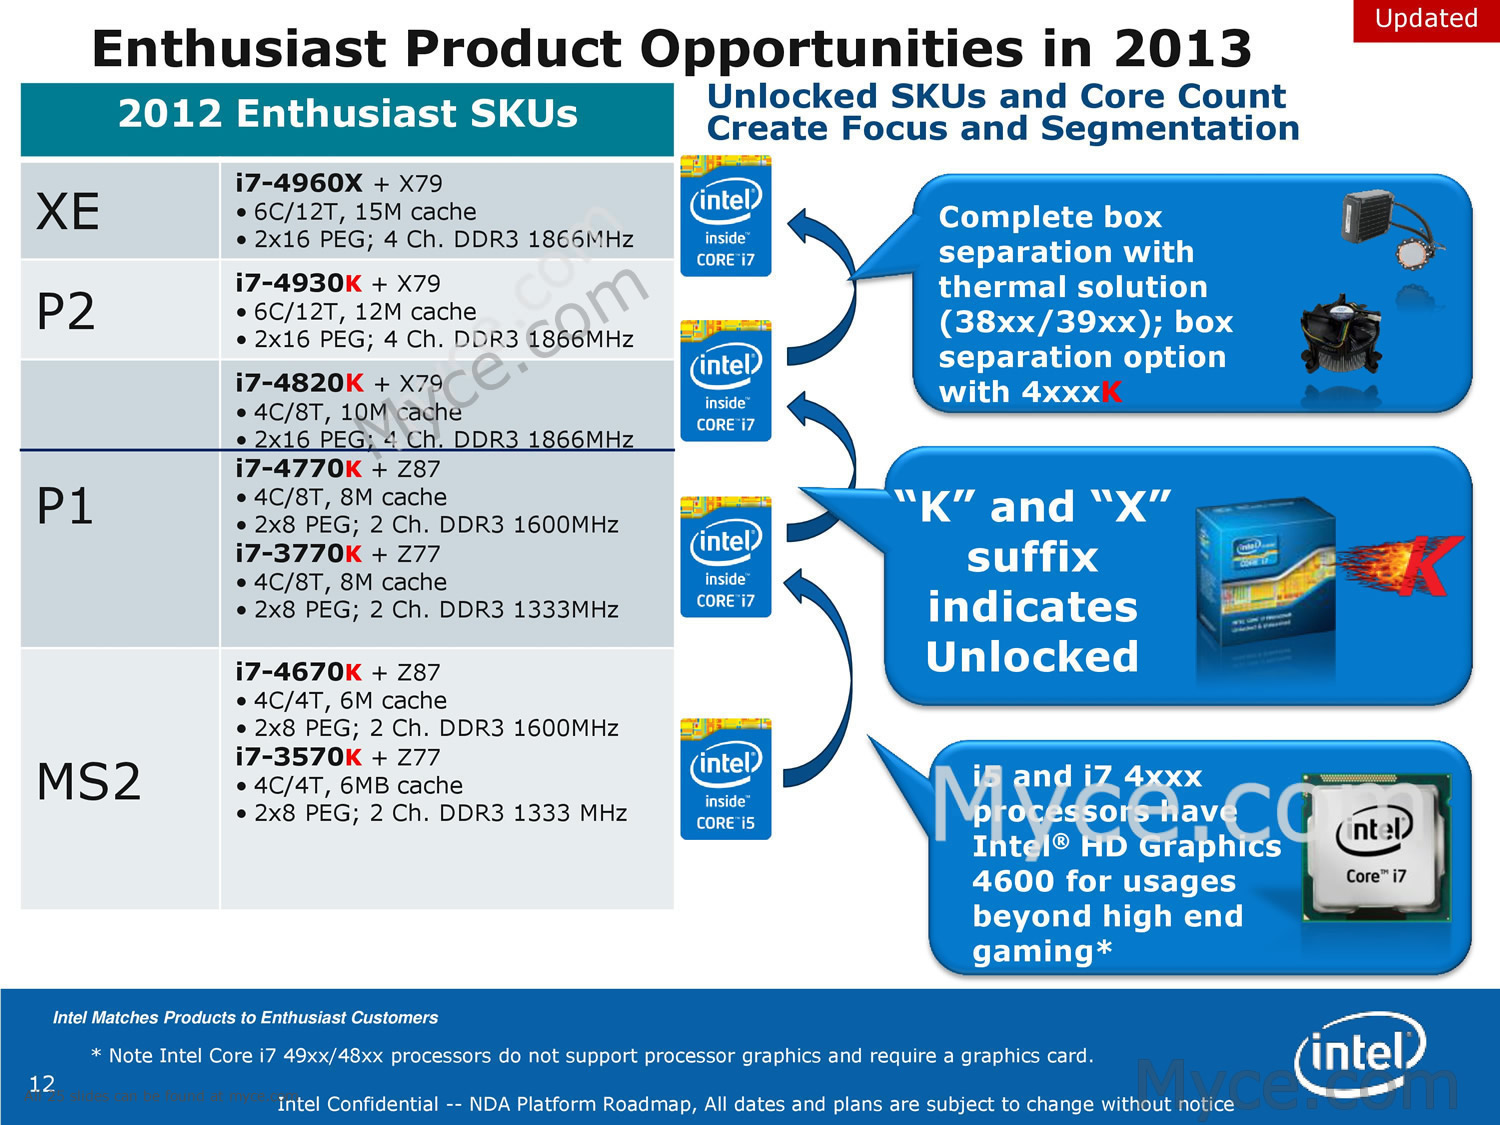 Leaked Intel Cpu Roadmap Reveals Haswell Refresh Bga Processors And I7 2600k 2nd Proc Only X79